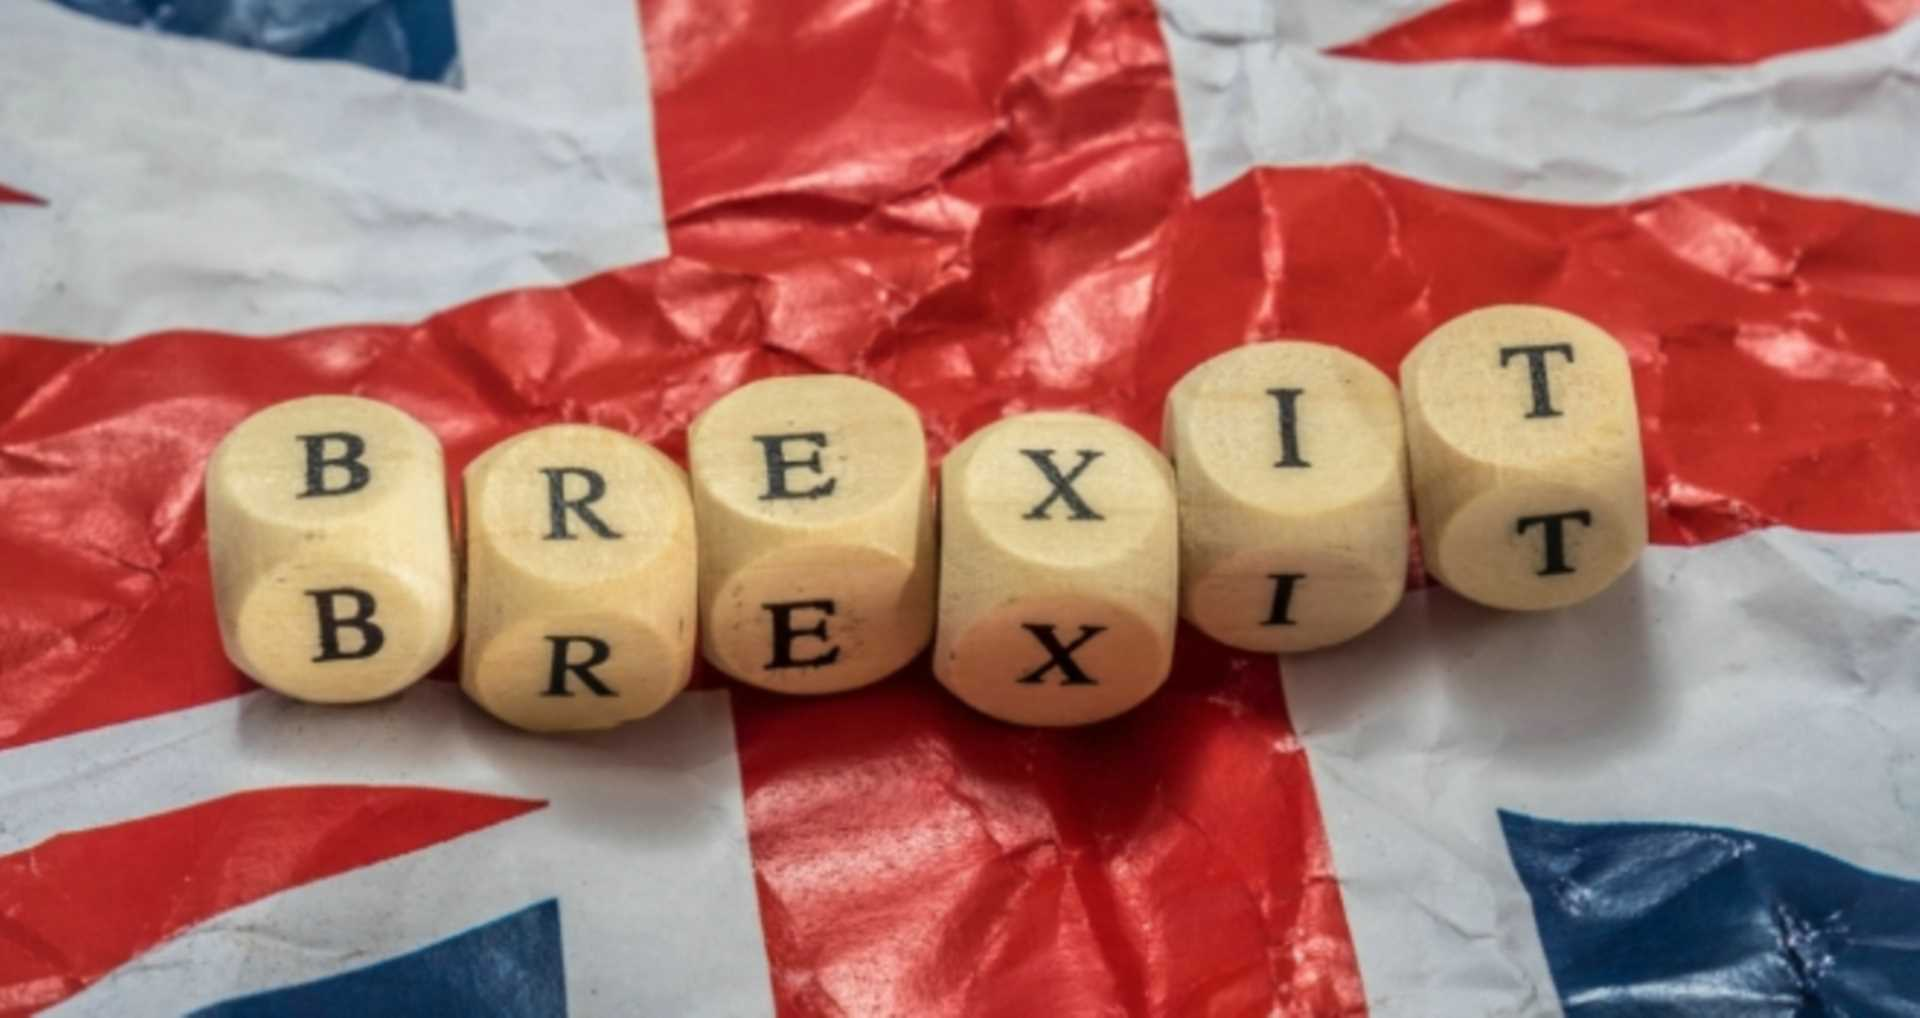 Brexit fears fail to deter buyers and sellers according to new survey